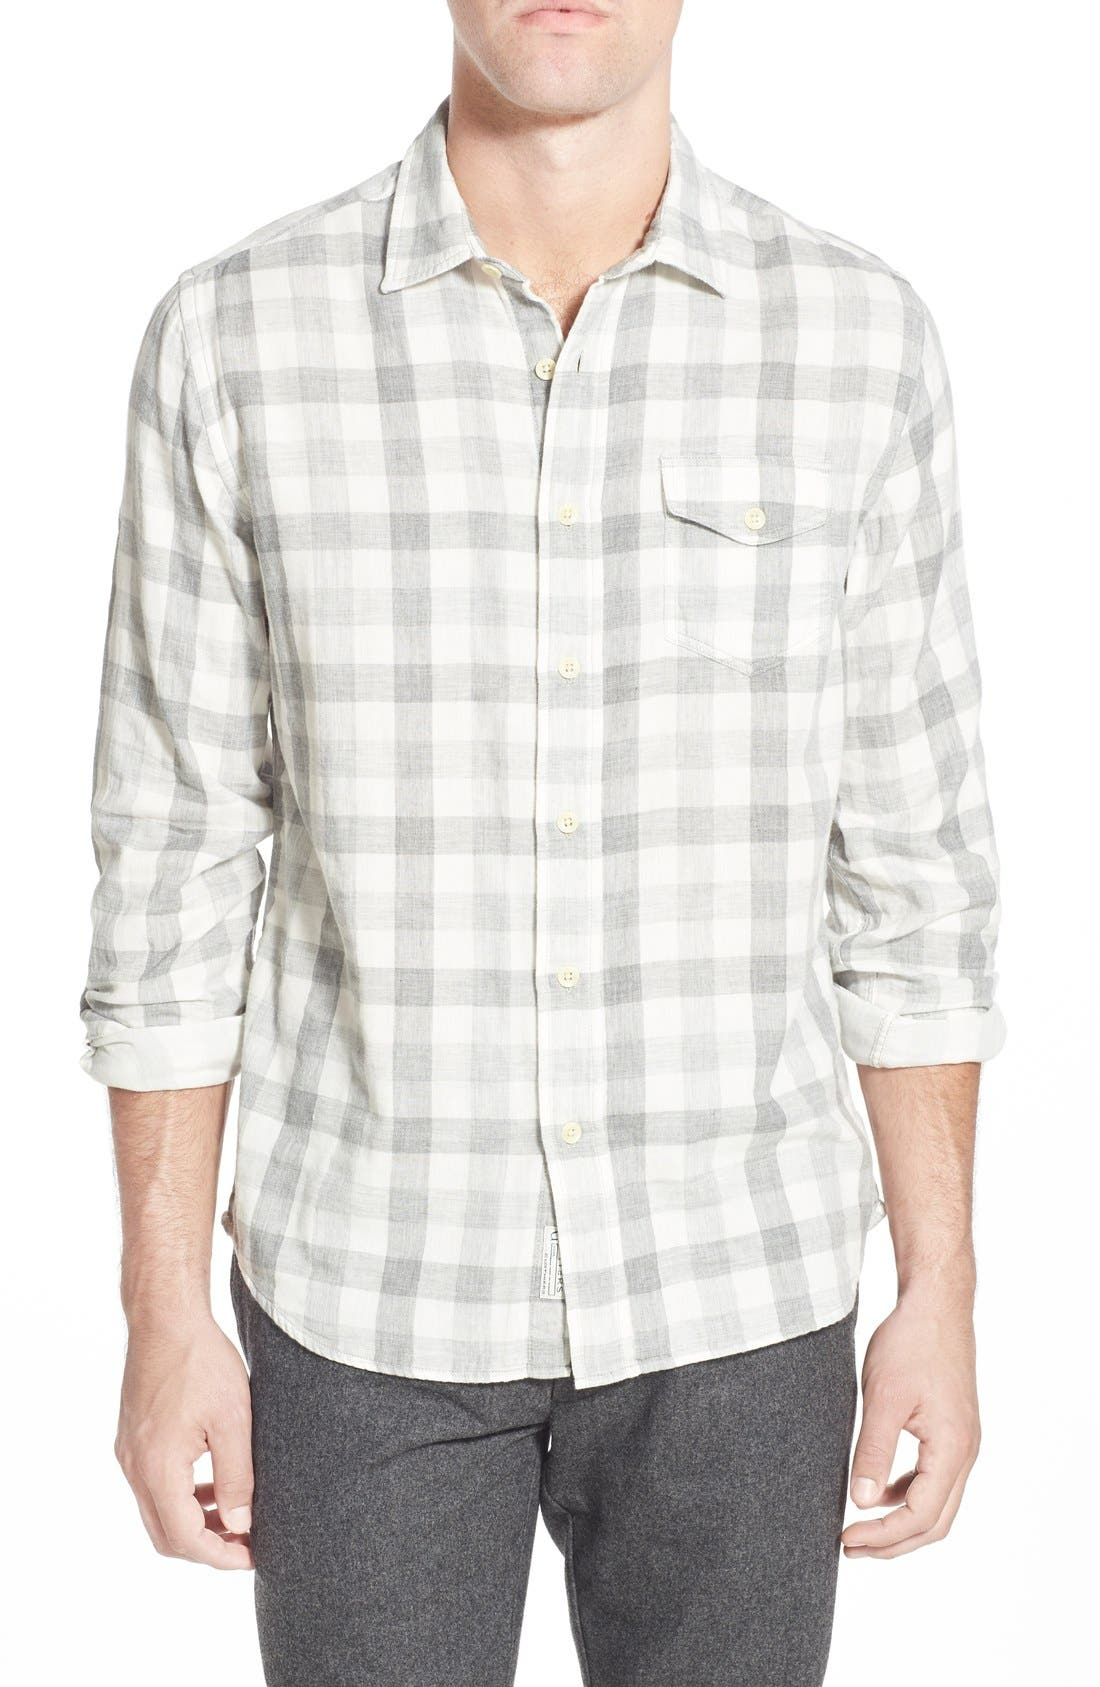 'Durham' Regular Fit Check Sport Shirt,                             Main thumbnail 1, color,                             Heather Grey Gingham